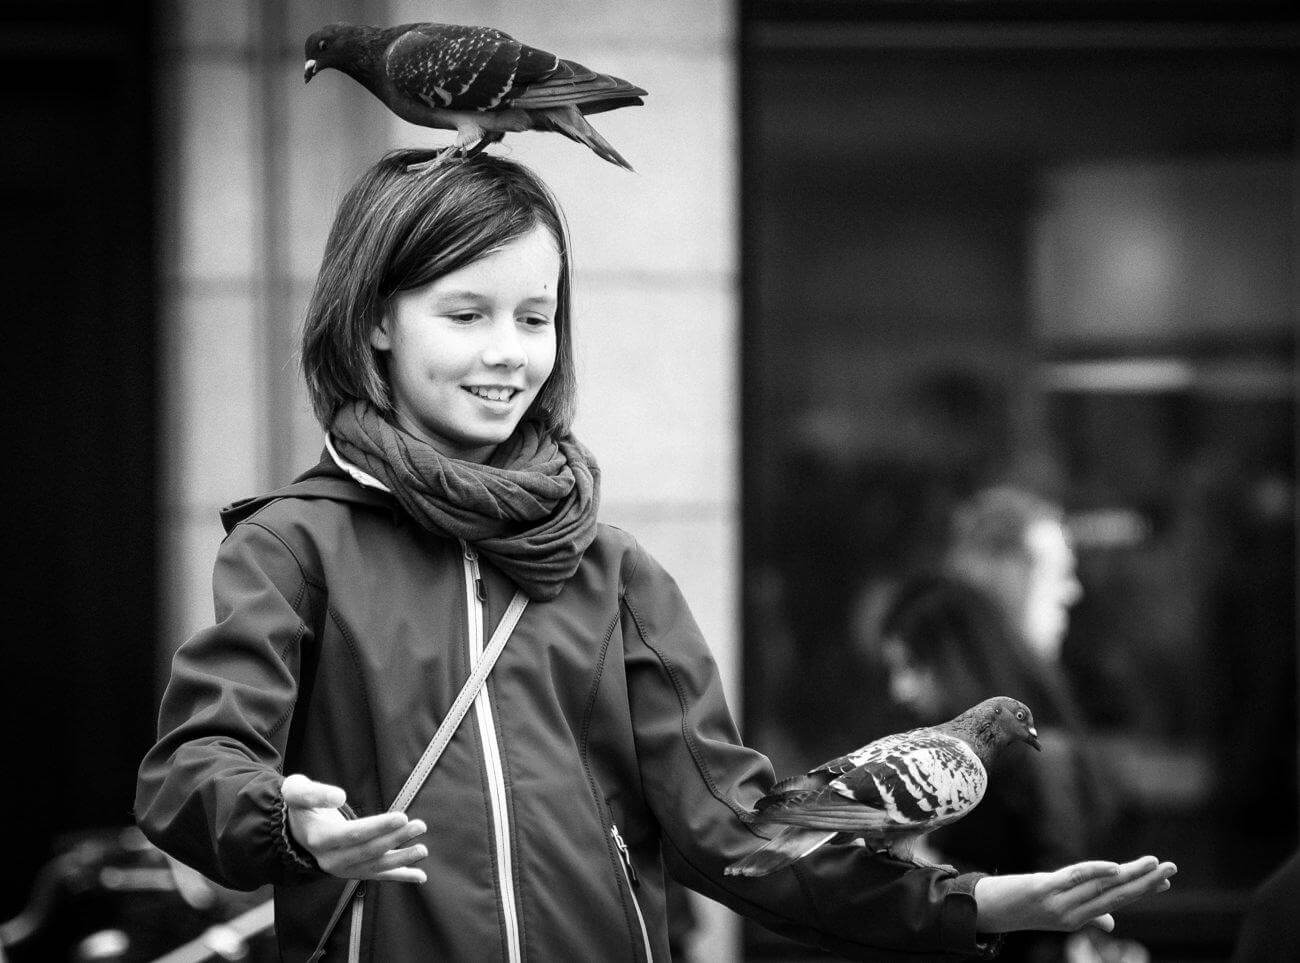 People of Amsterdam | Photograph by Zdenek Sindelar of CuriousZed Photography